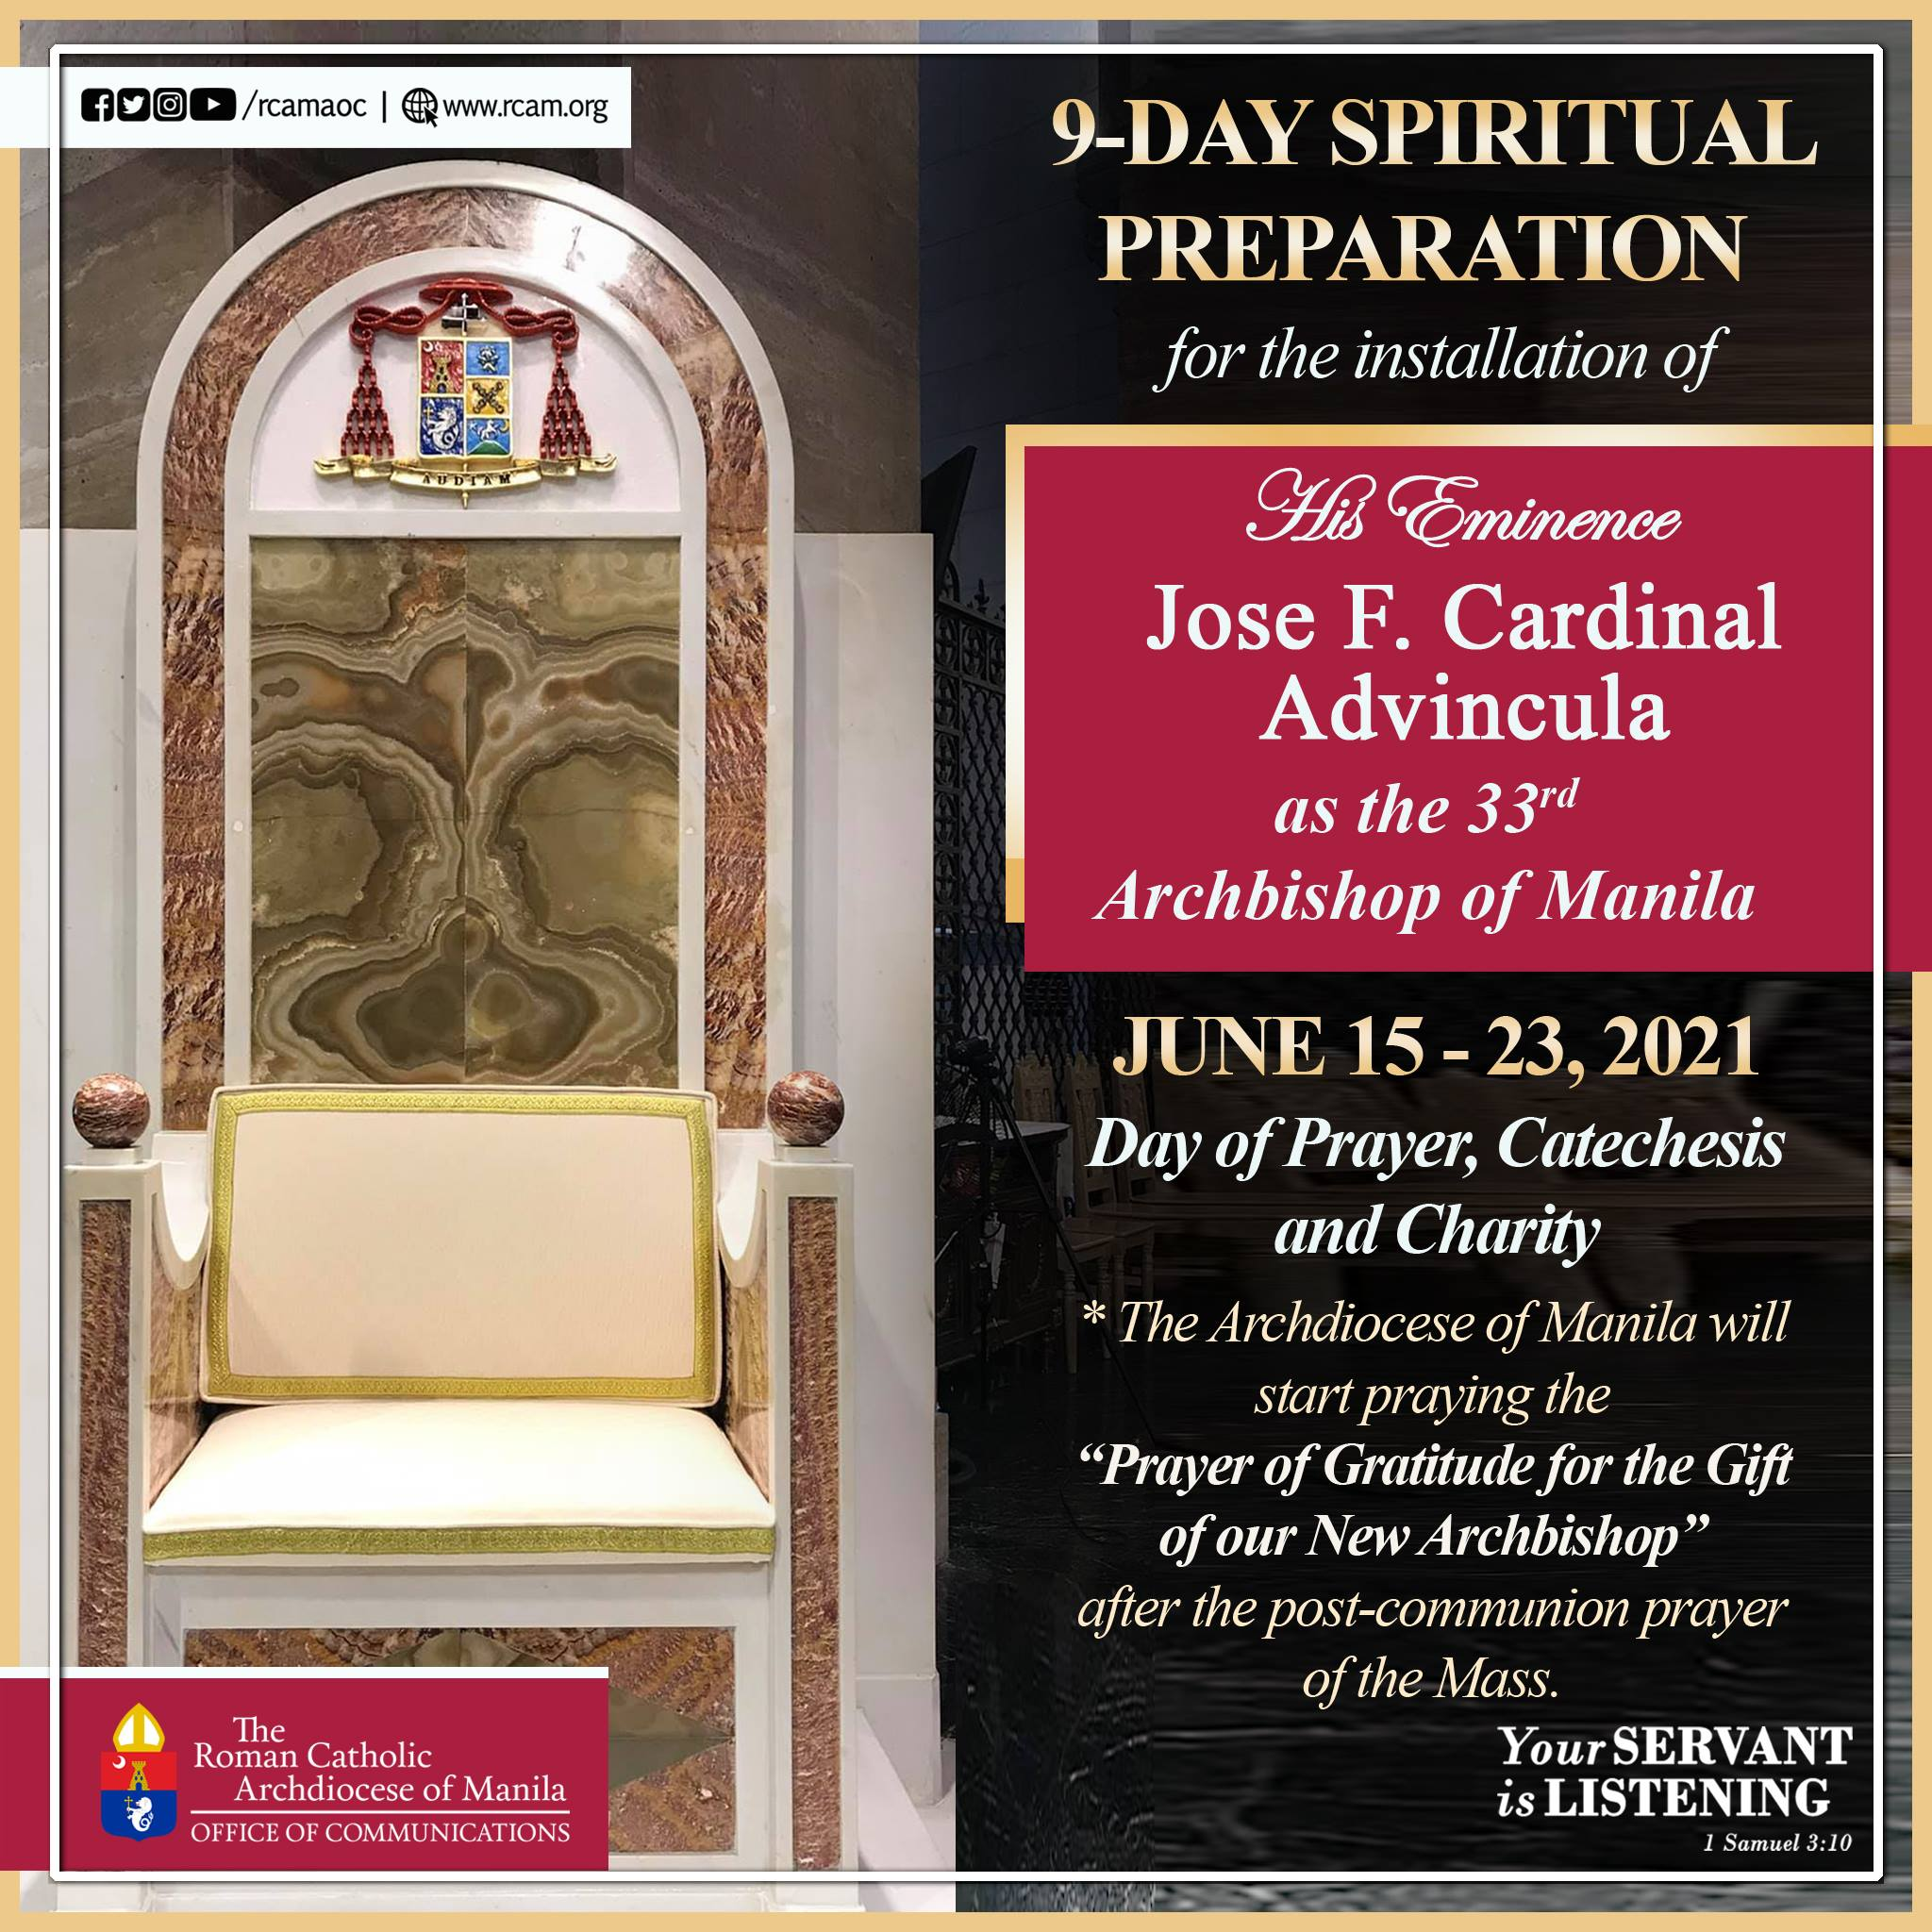 9-day Spiritual Preparation for the Installation of Cardinal Advincula